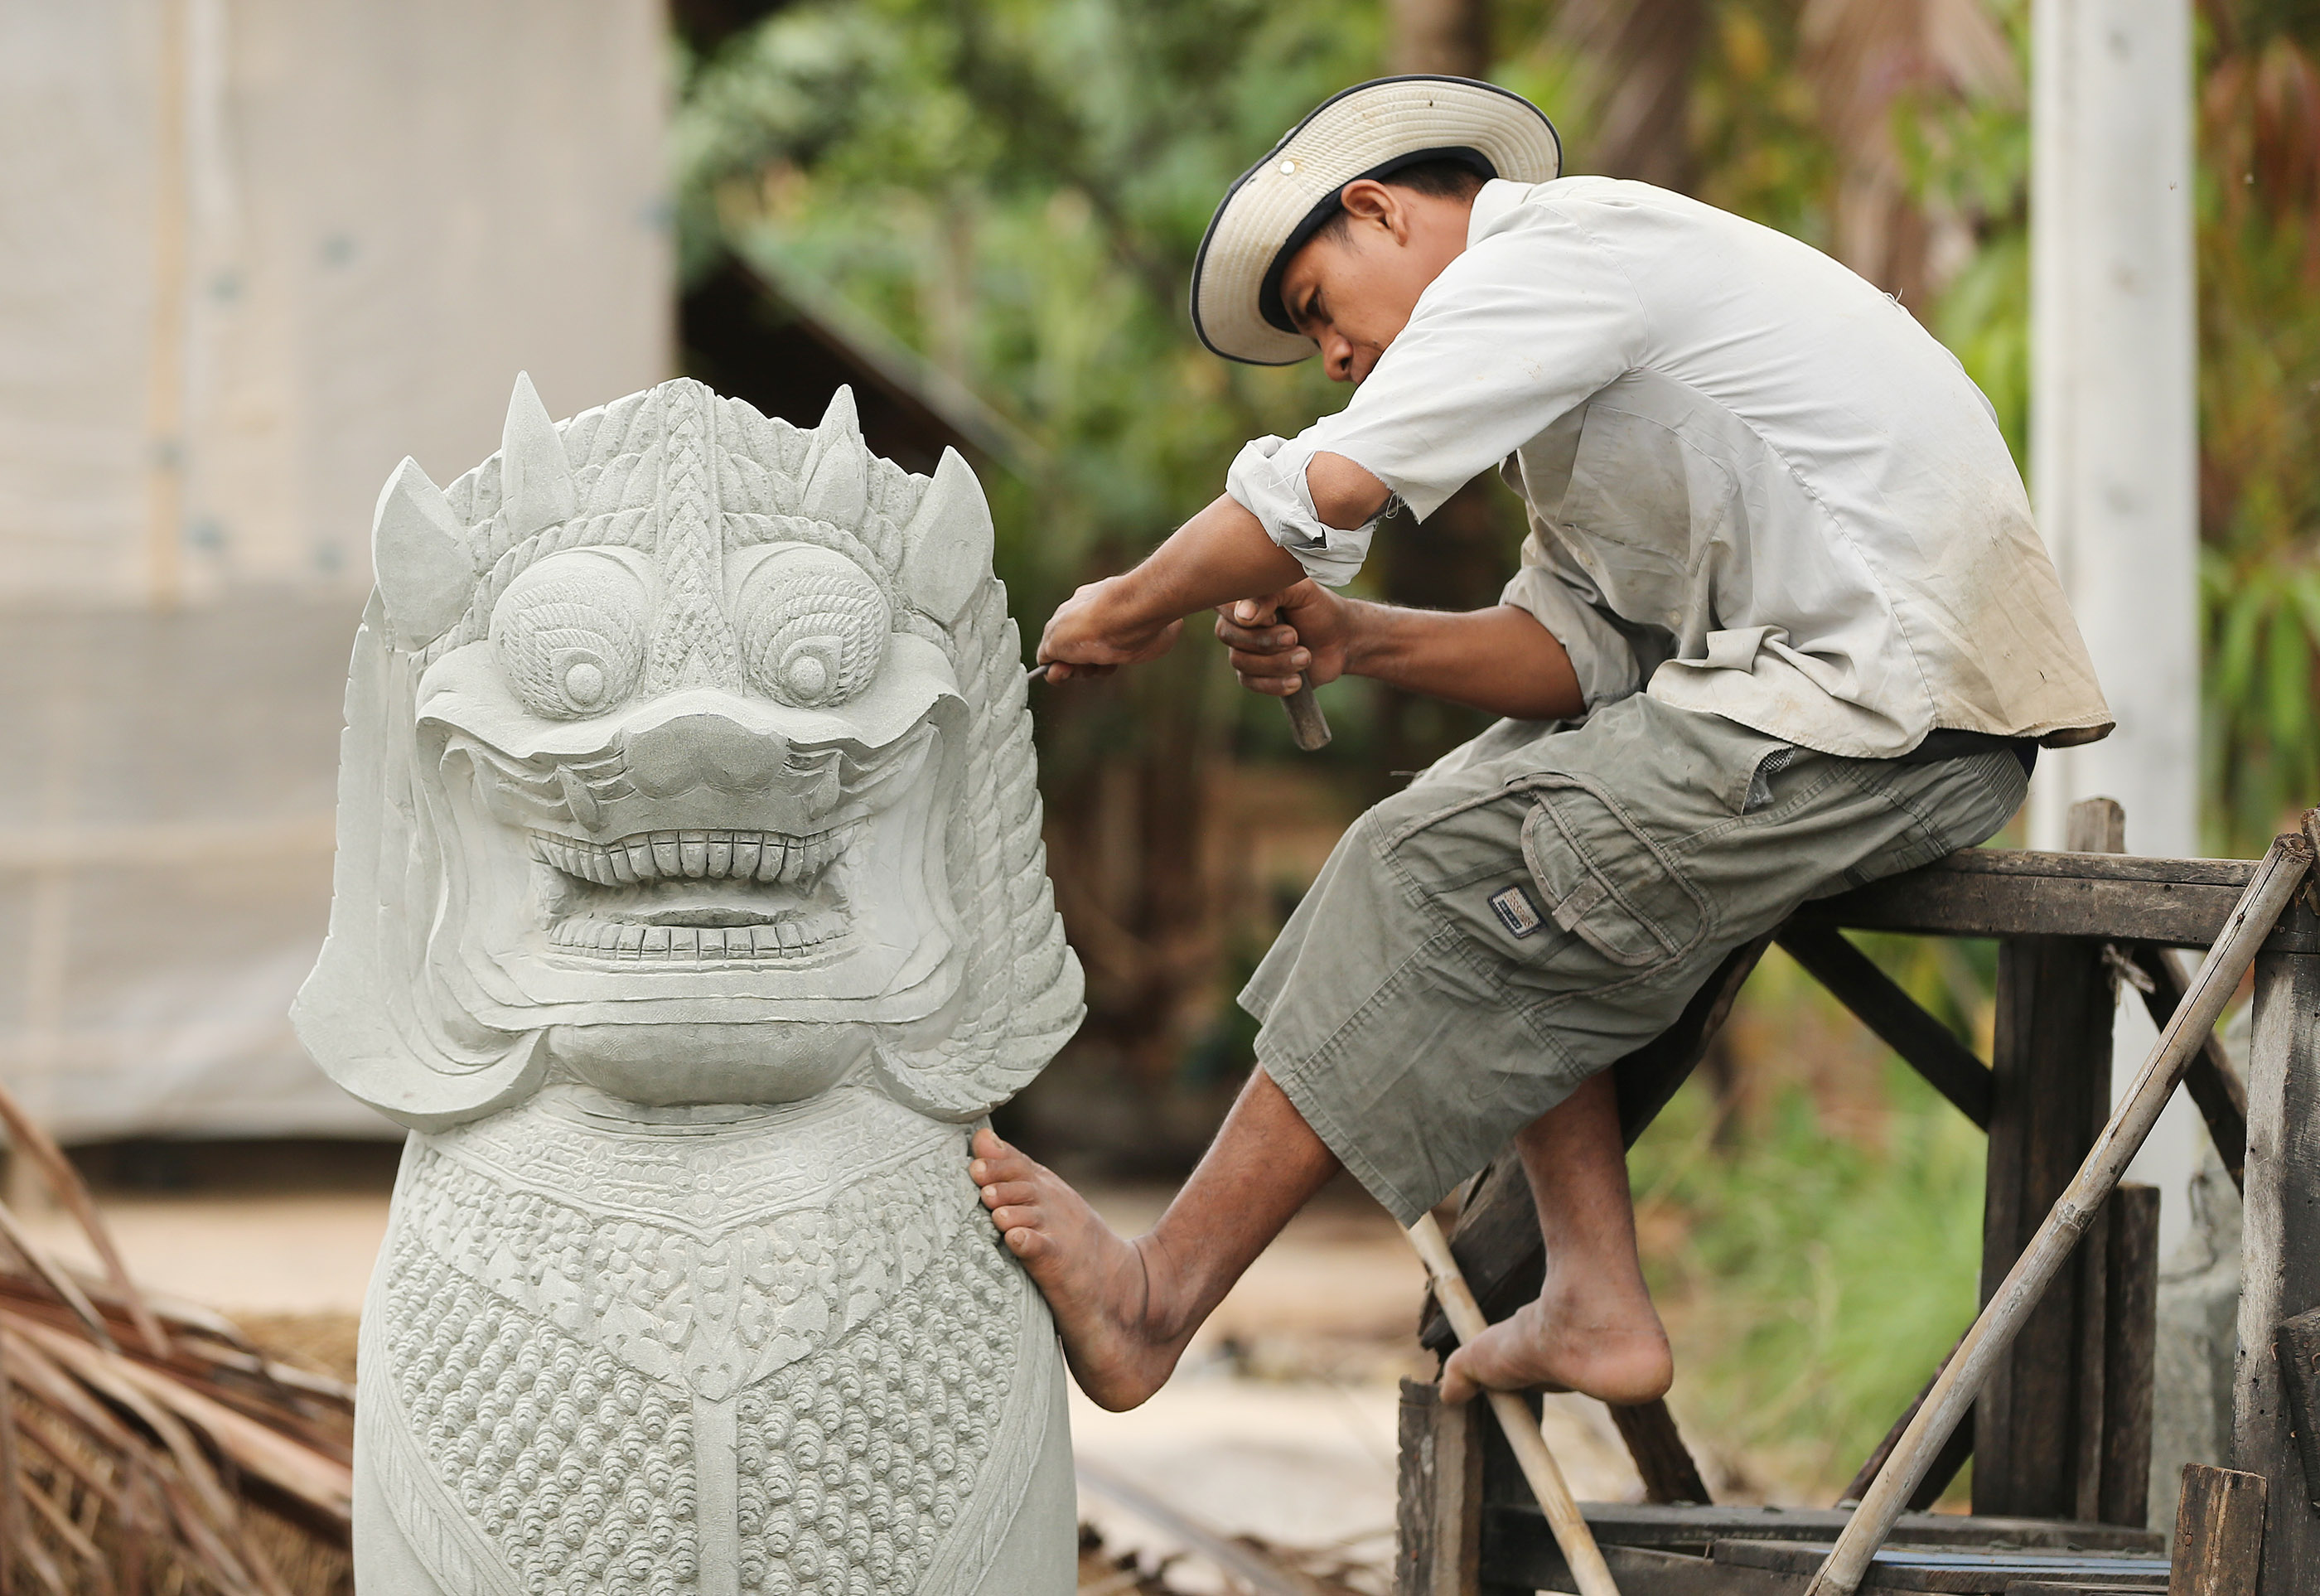 A sculptor works on a statue in Cambodia on April 28, 2018.